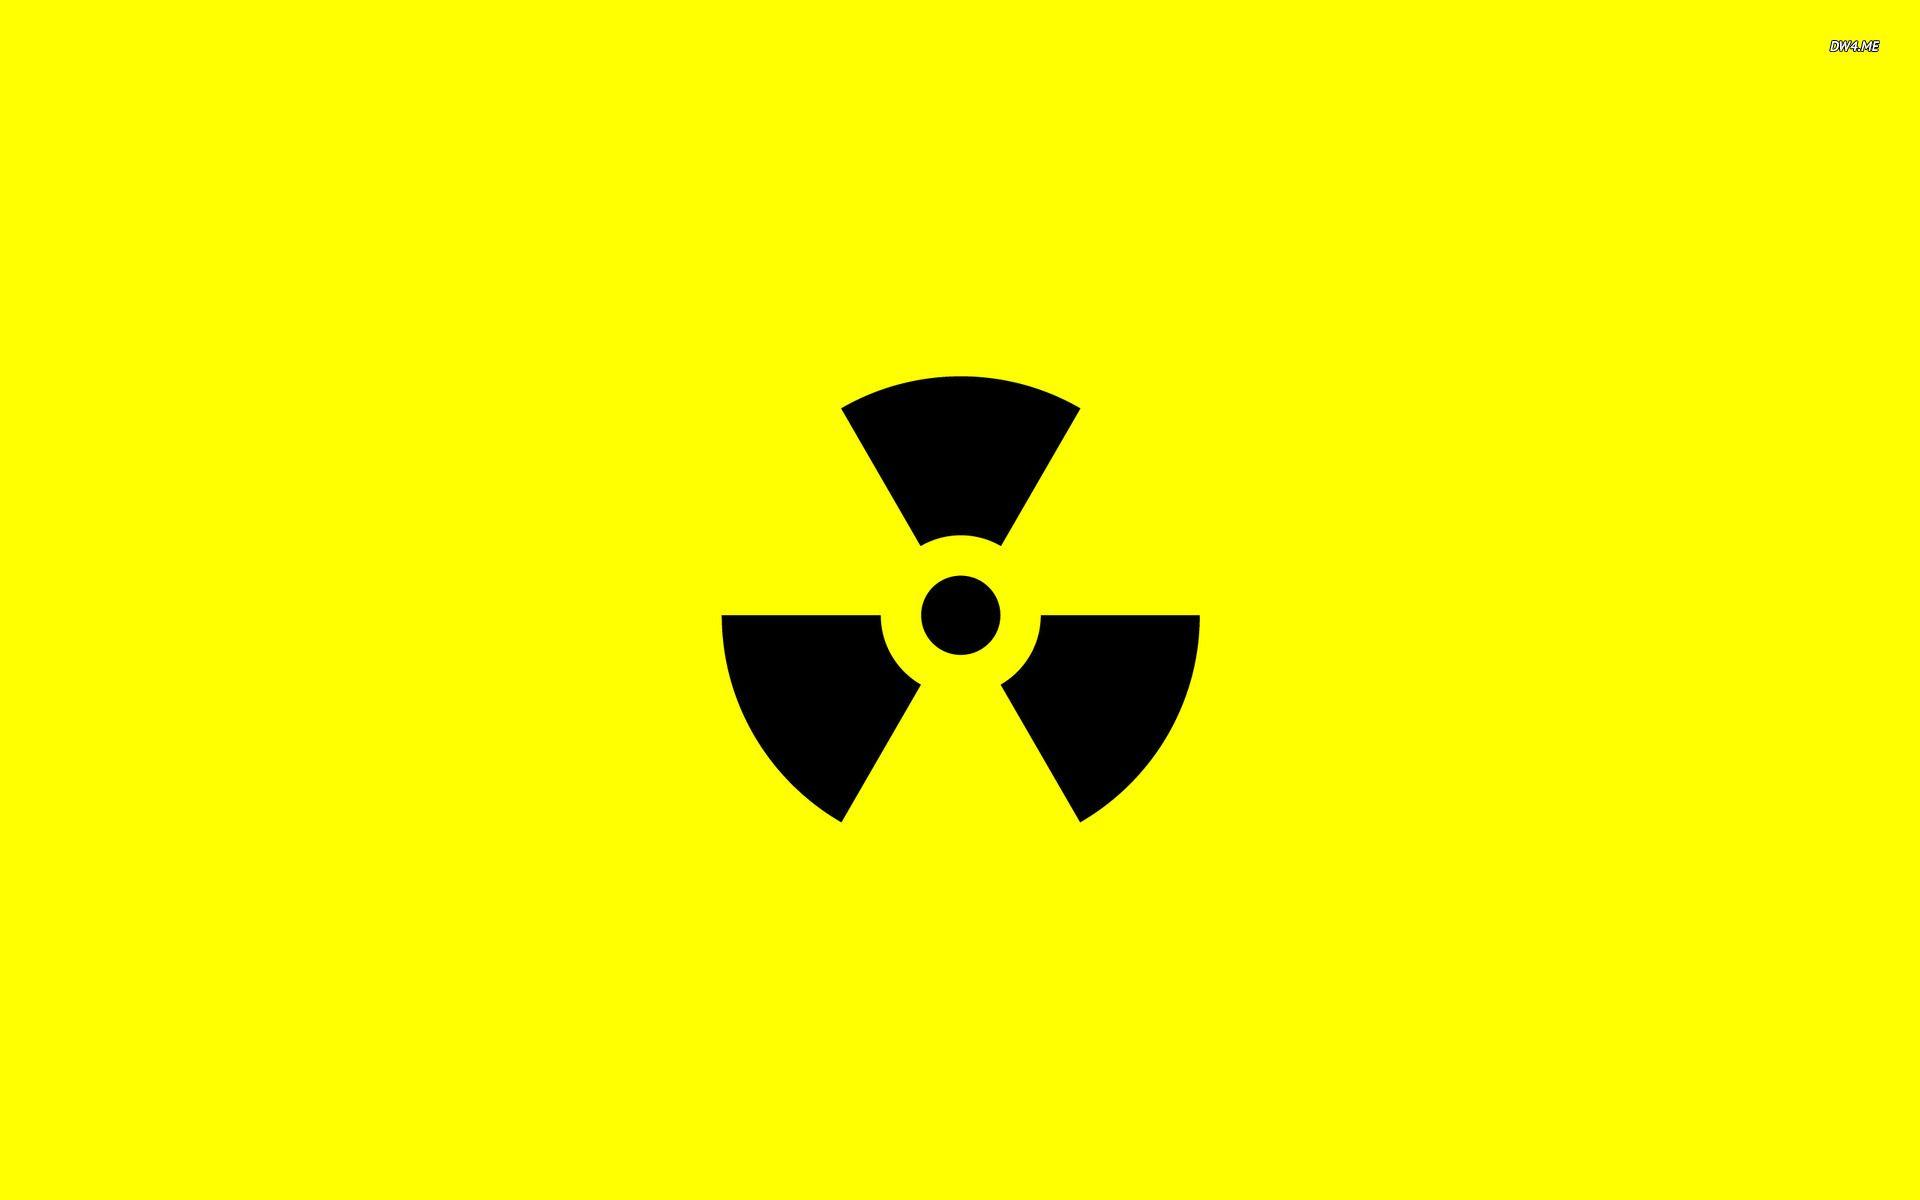 Radioactive Symbol Wallpaper - Viewing Gallery